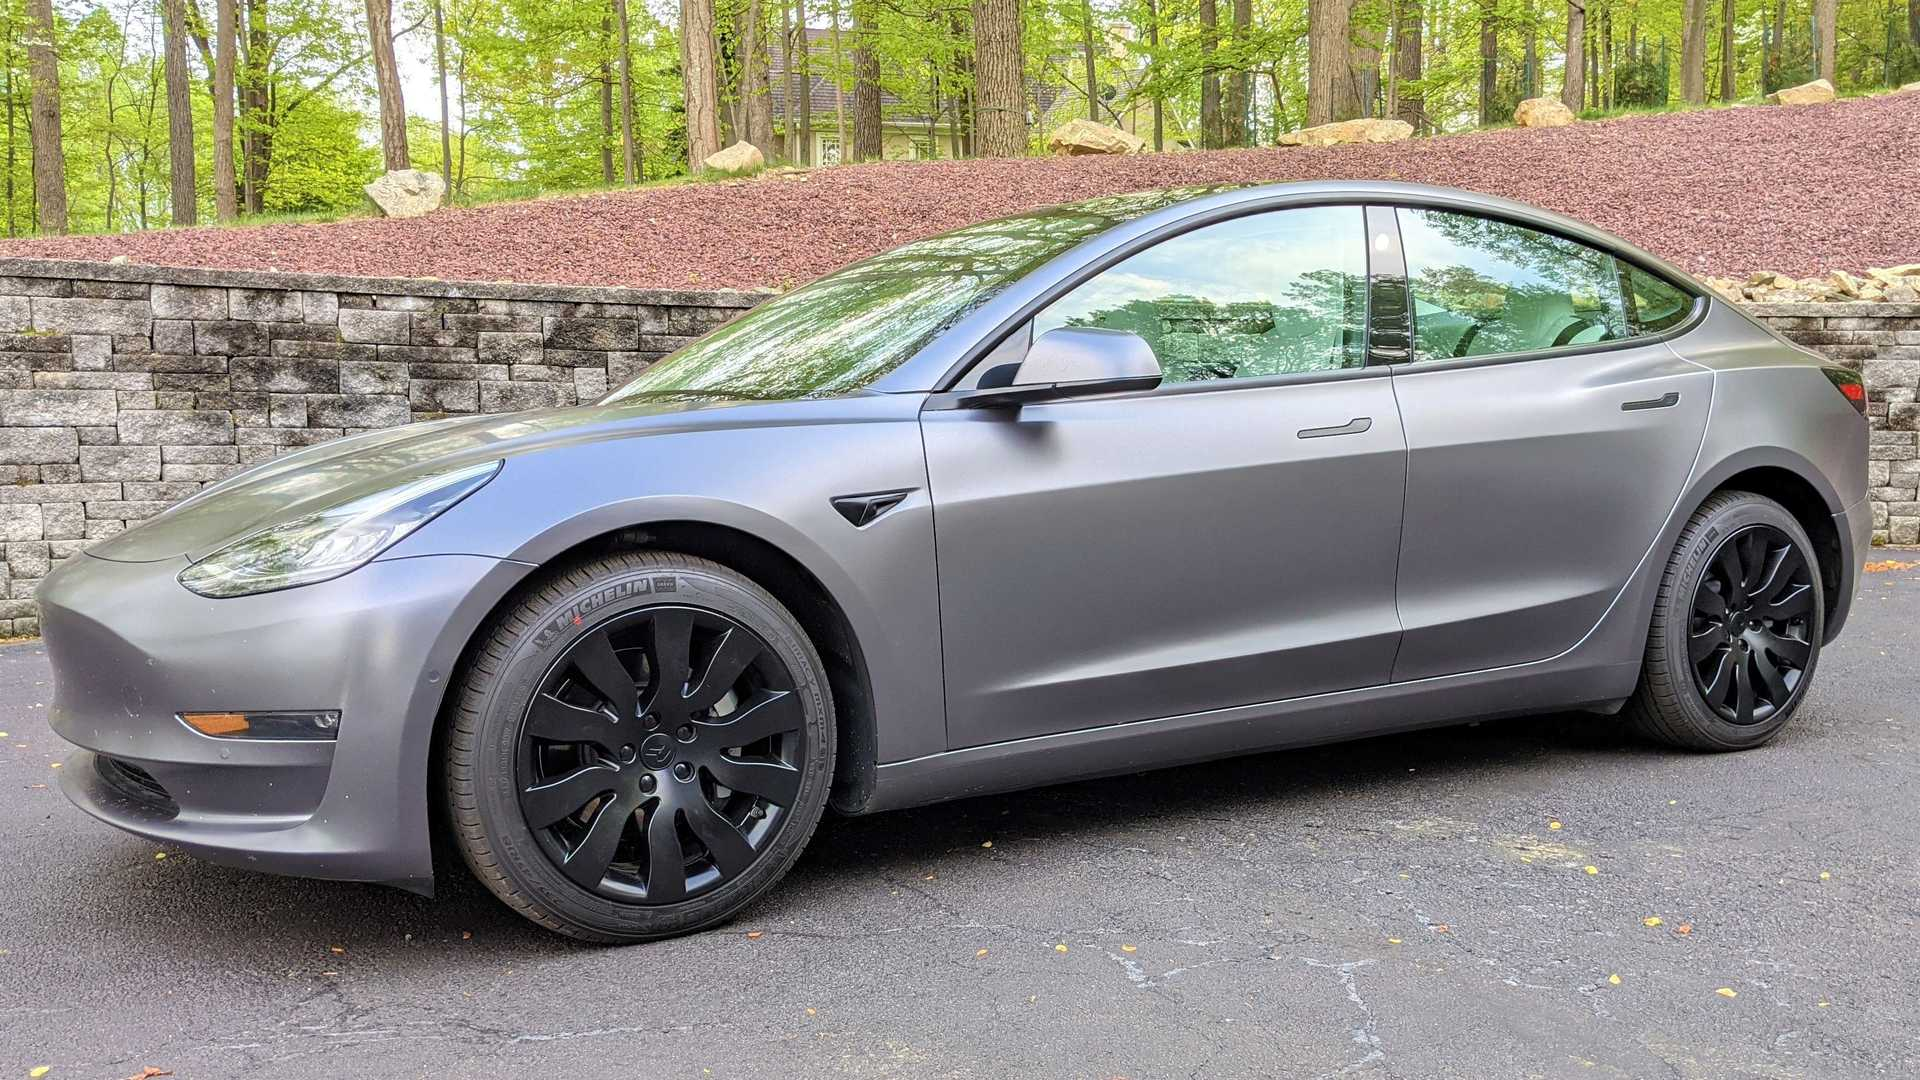 Tesla Model 3 Orbital Wheel Covers: A Stylish And Affordable Upgrade